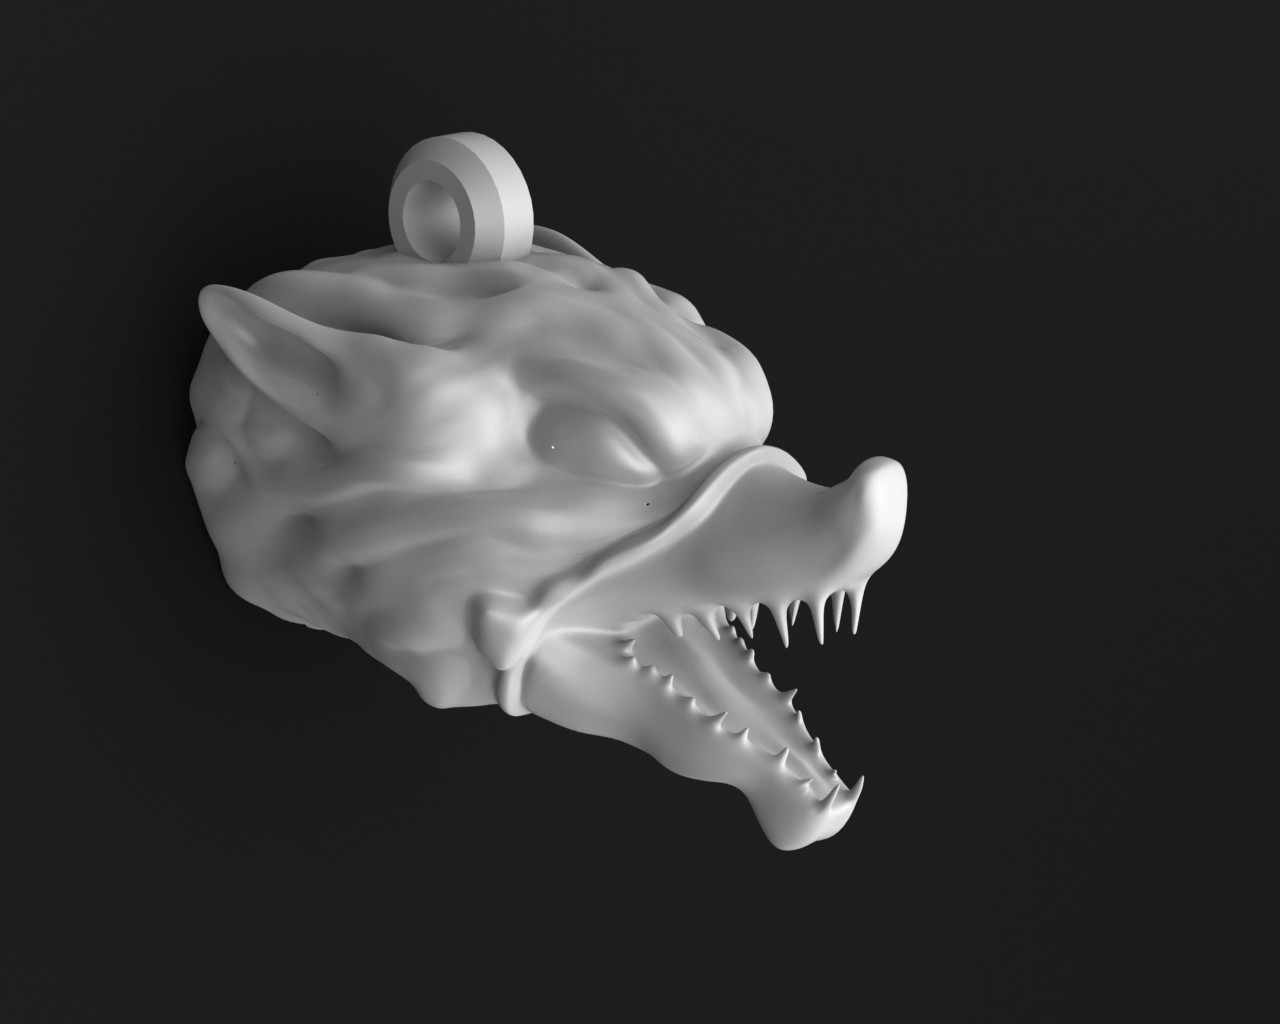 wolf 3.5.JPG Download STL file Wolf head keychain • 3D printable object, Majs84